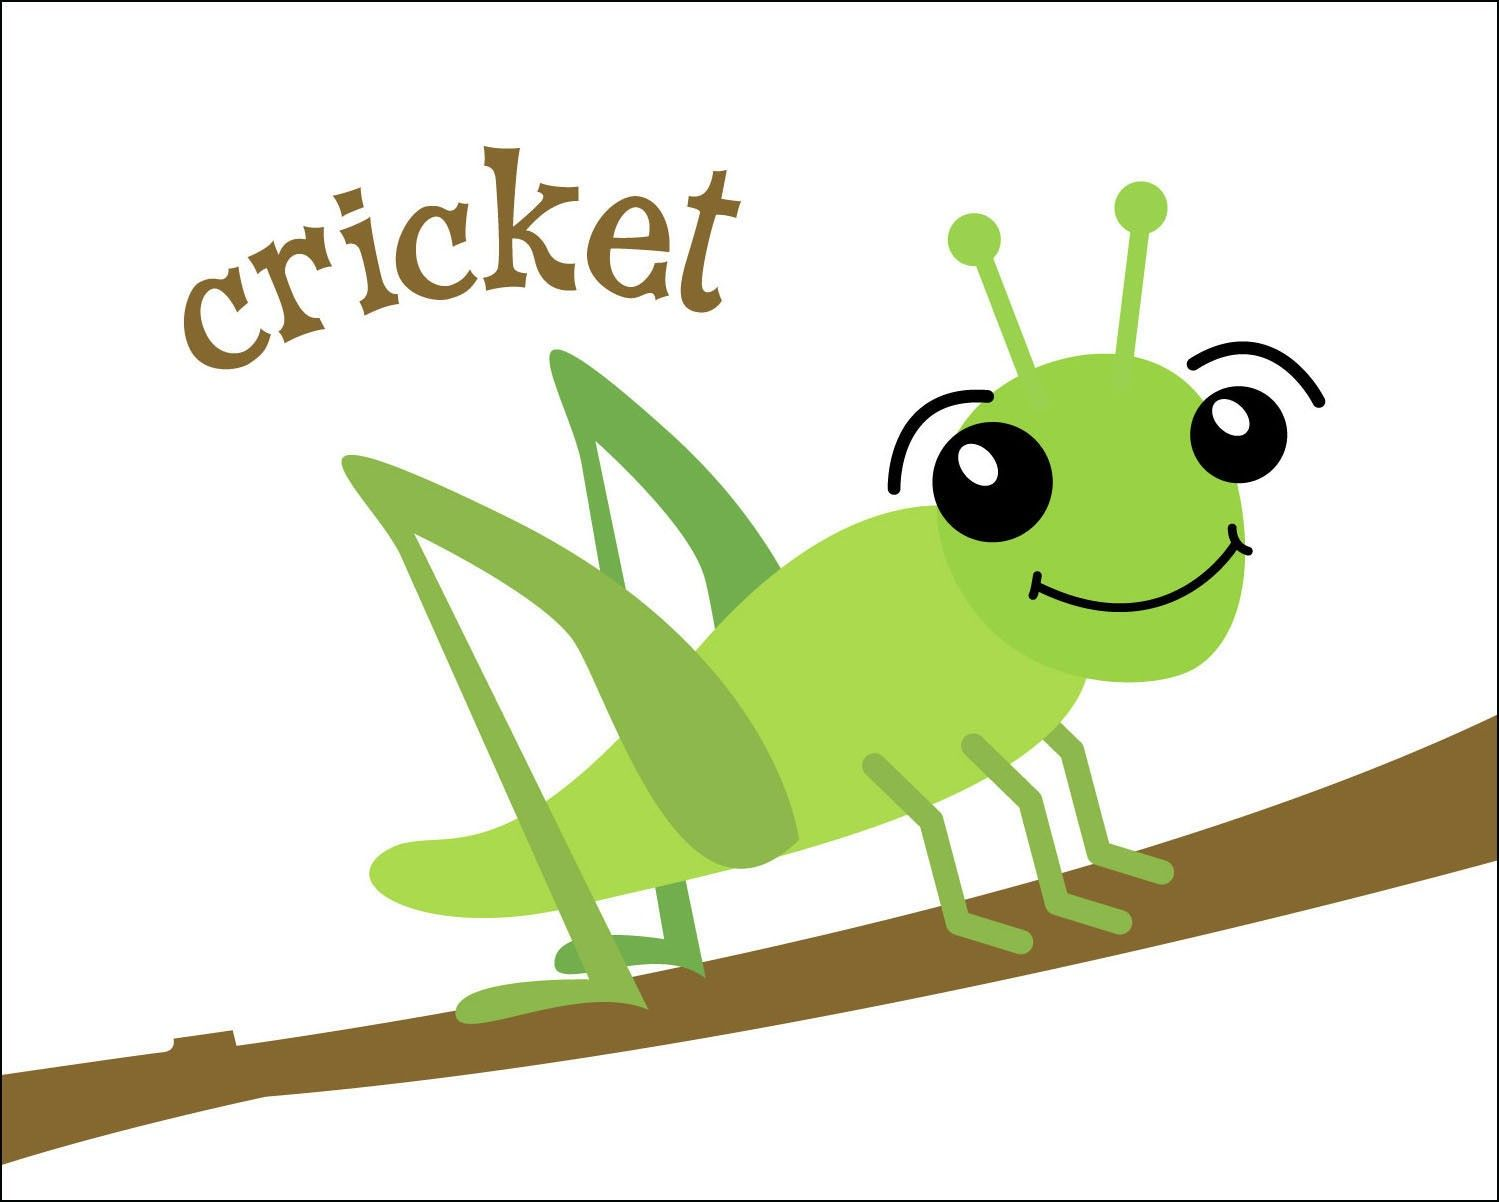 Cricket bug clipart clipart transparent library Crickets are annoying, whether in garden or home, and hiring an ... clipart transparent library